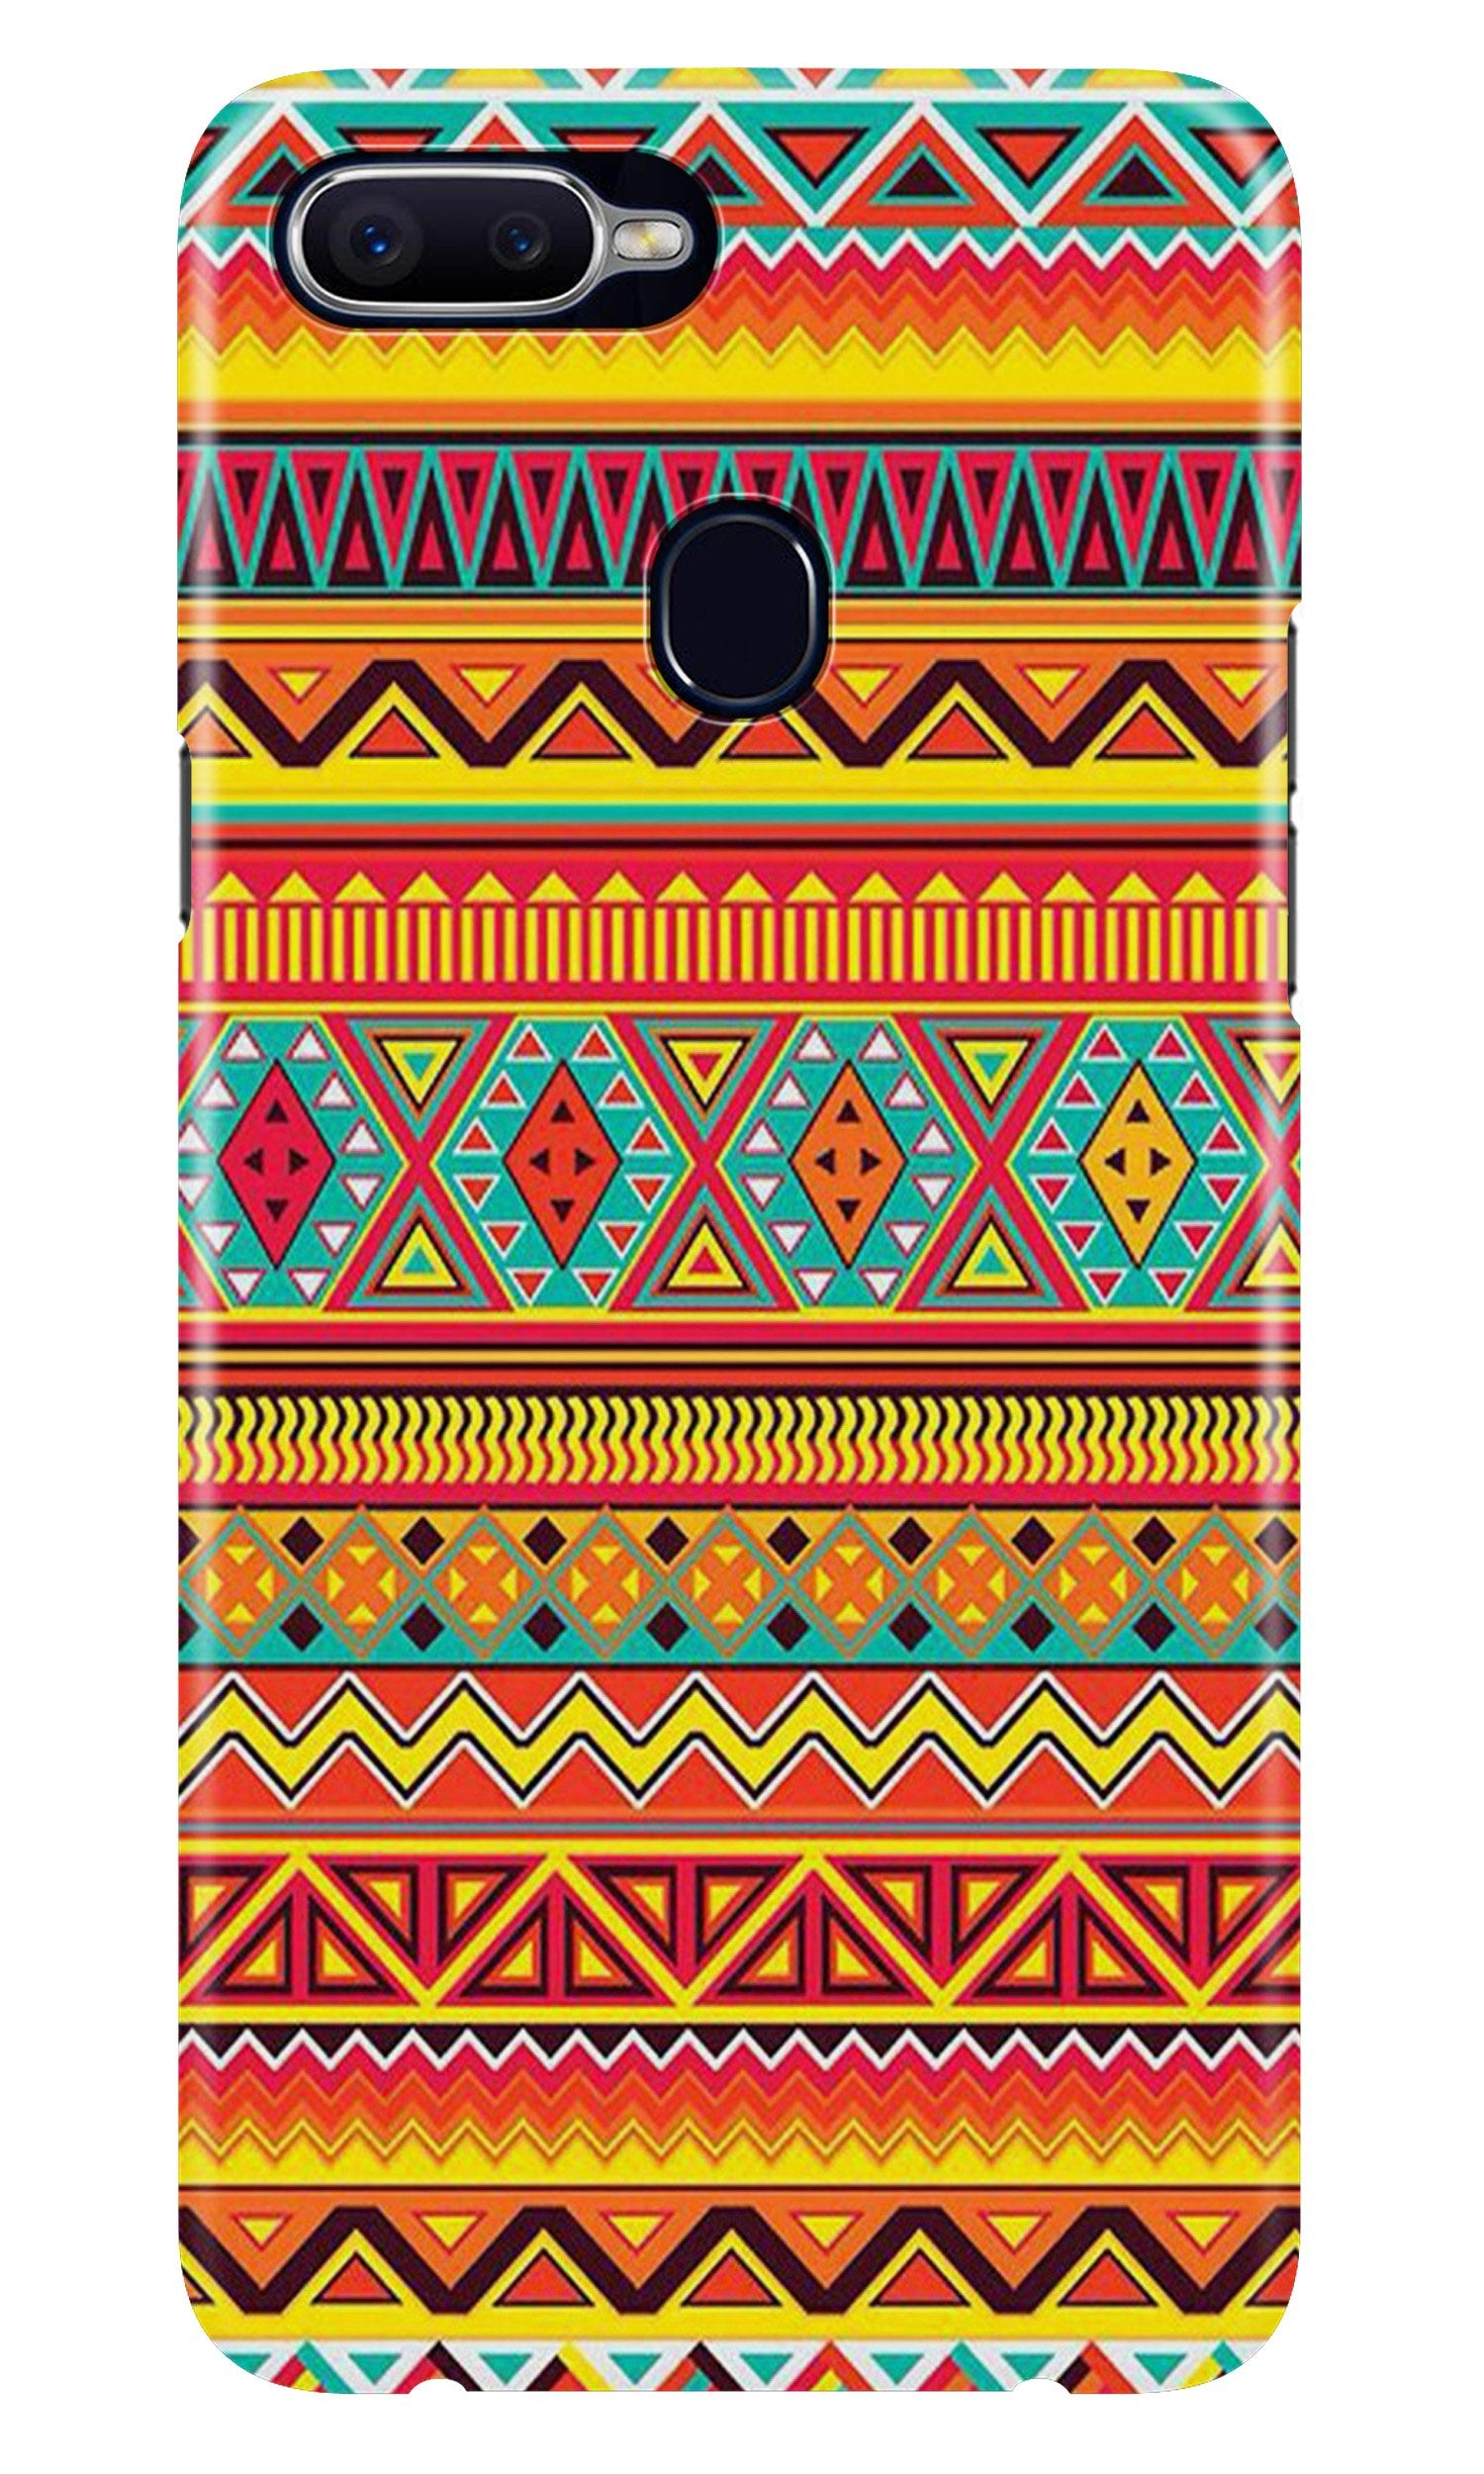 Zigzag line pattern Case for Realme 2